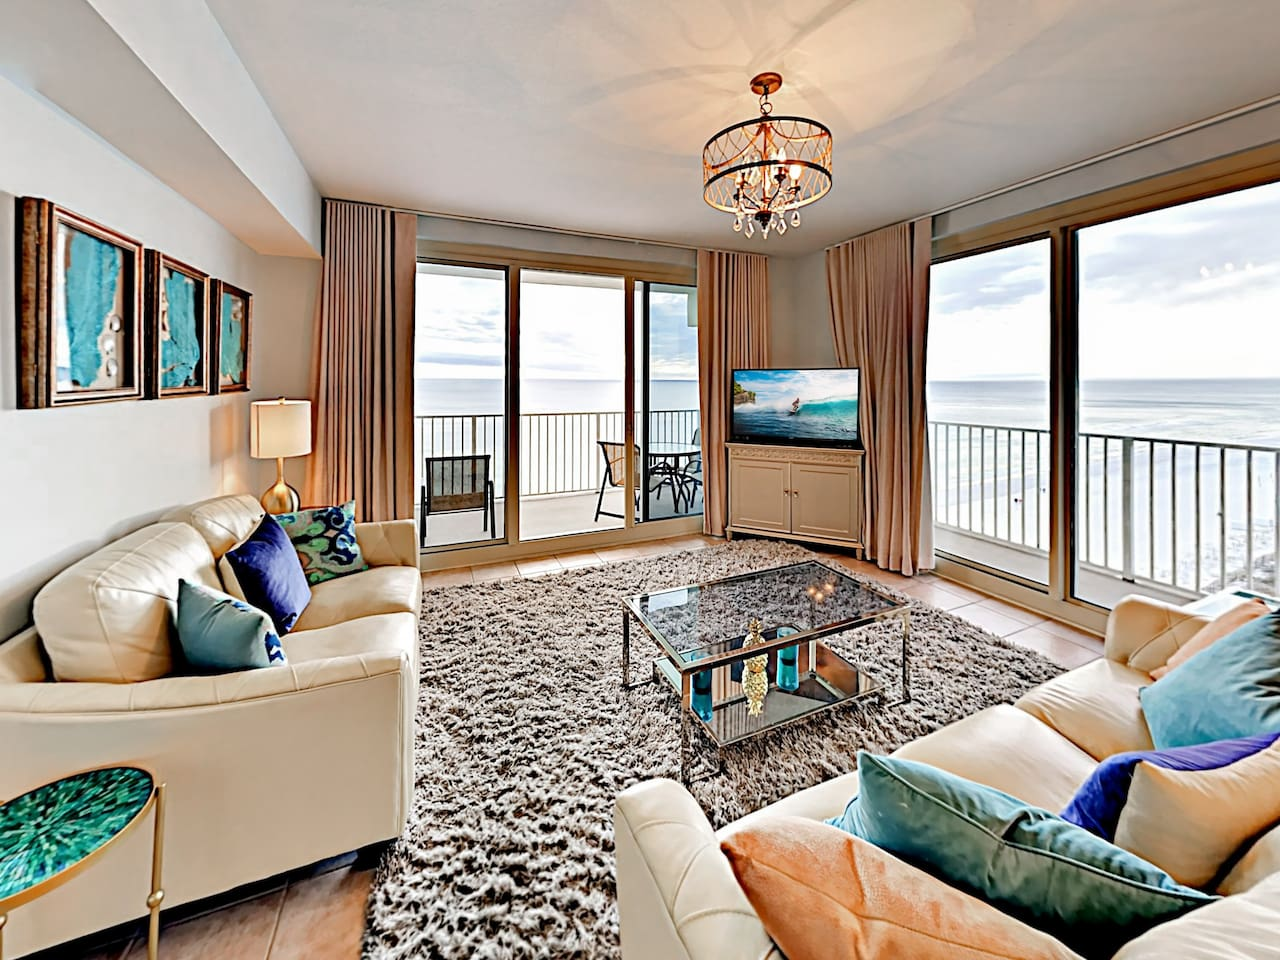 Welcome to Panama City Beach! This condo is professionally managed by TurnKey Vacation Rentals.